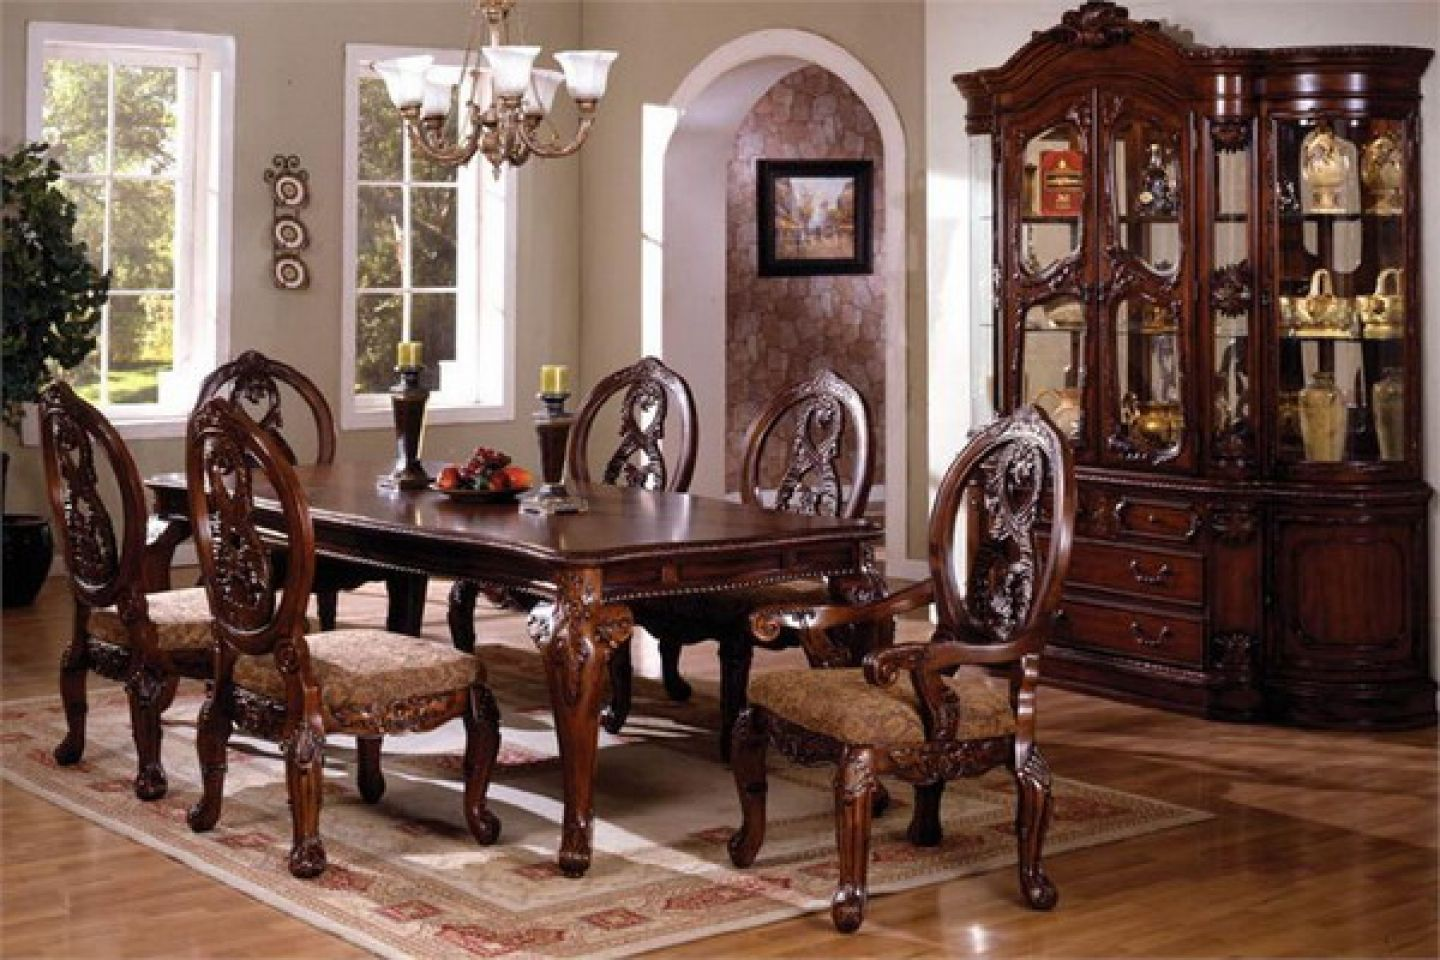 The Elegant Traditional Tuscany Dining Table Set Is The Perfect Dining Roo